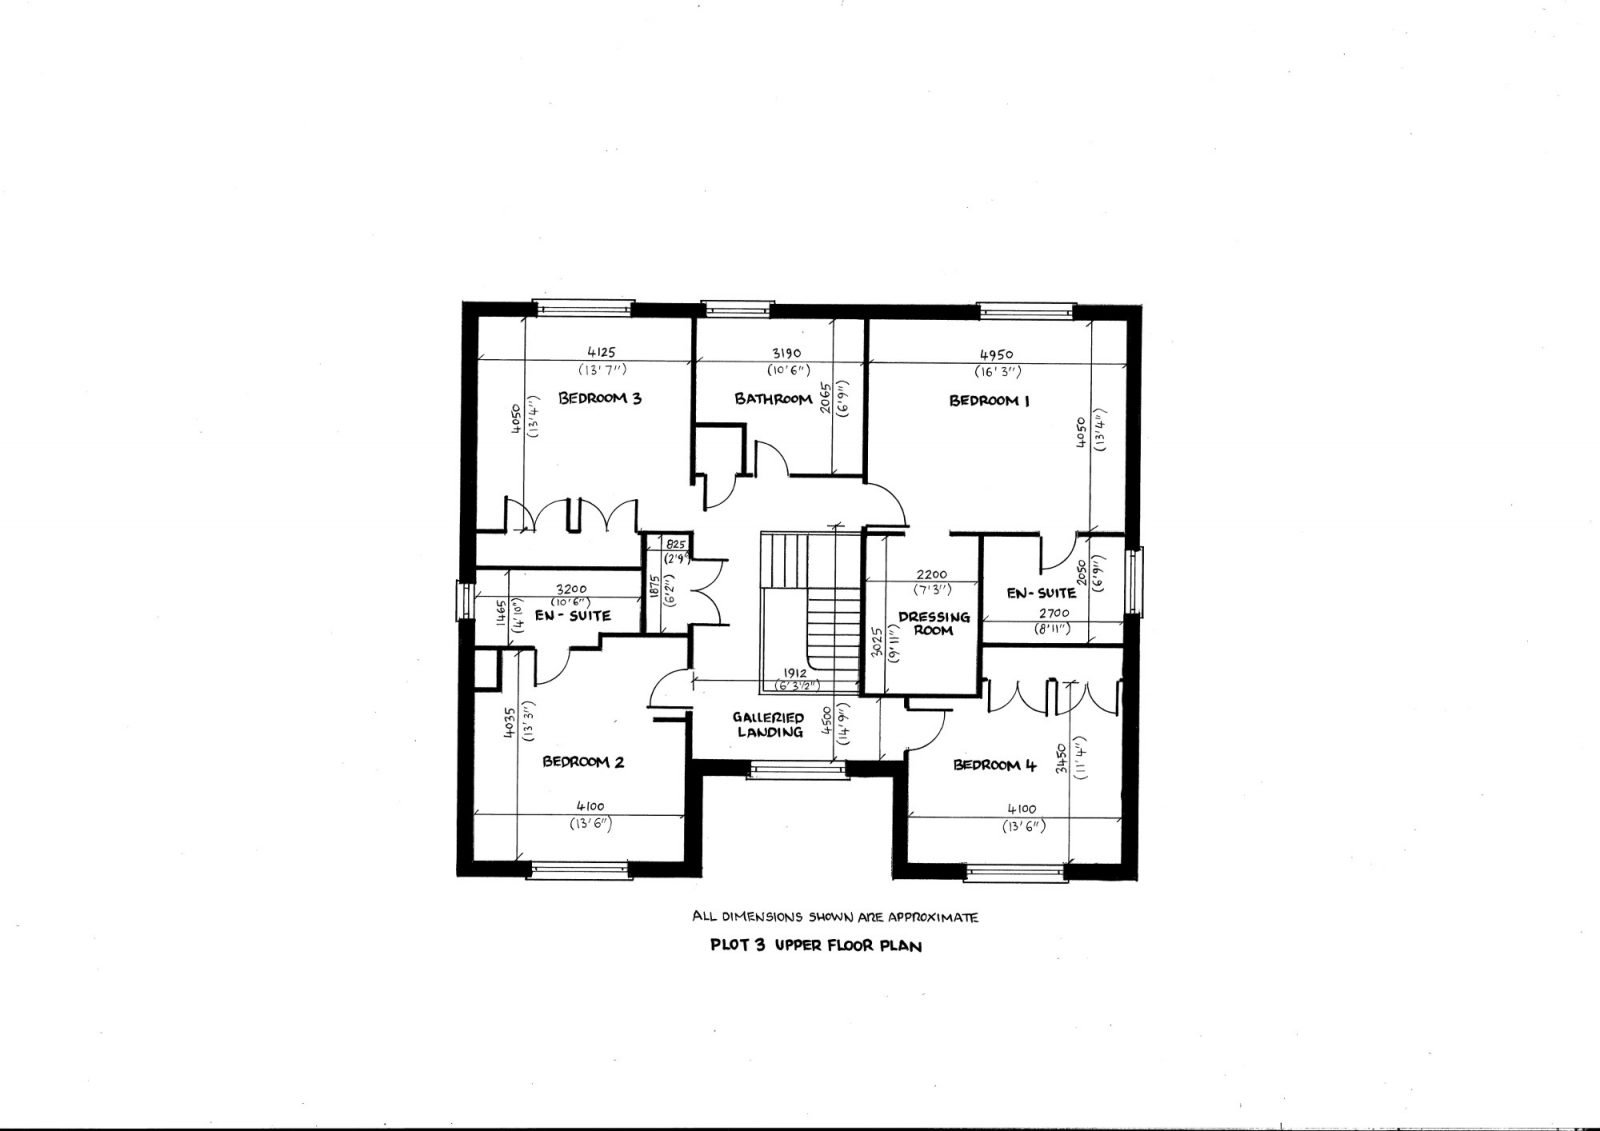 plot-3-upper-floor-plan